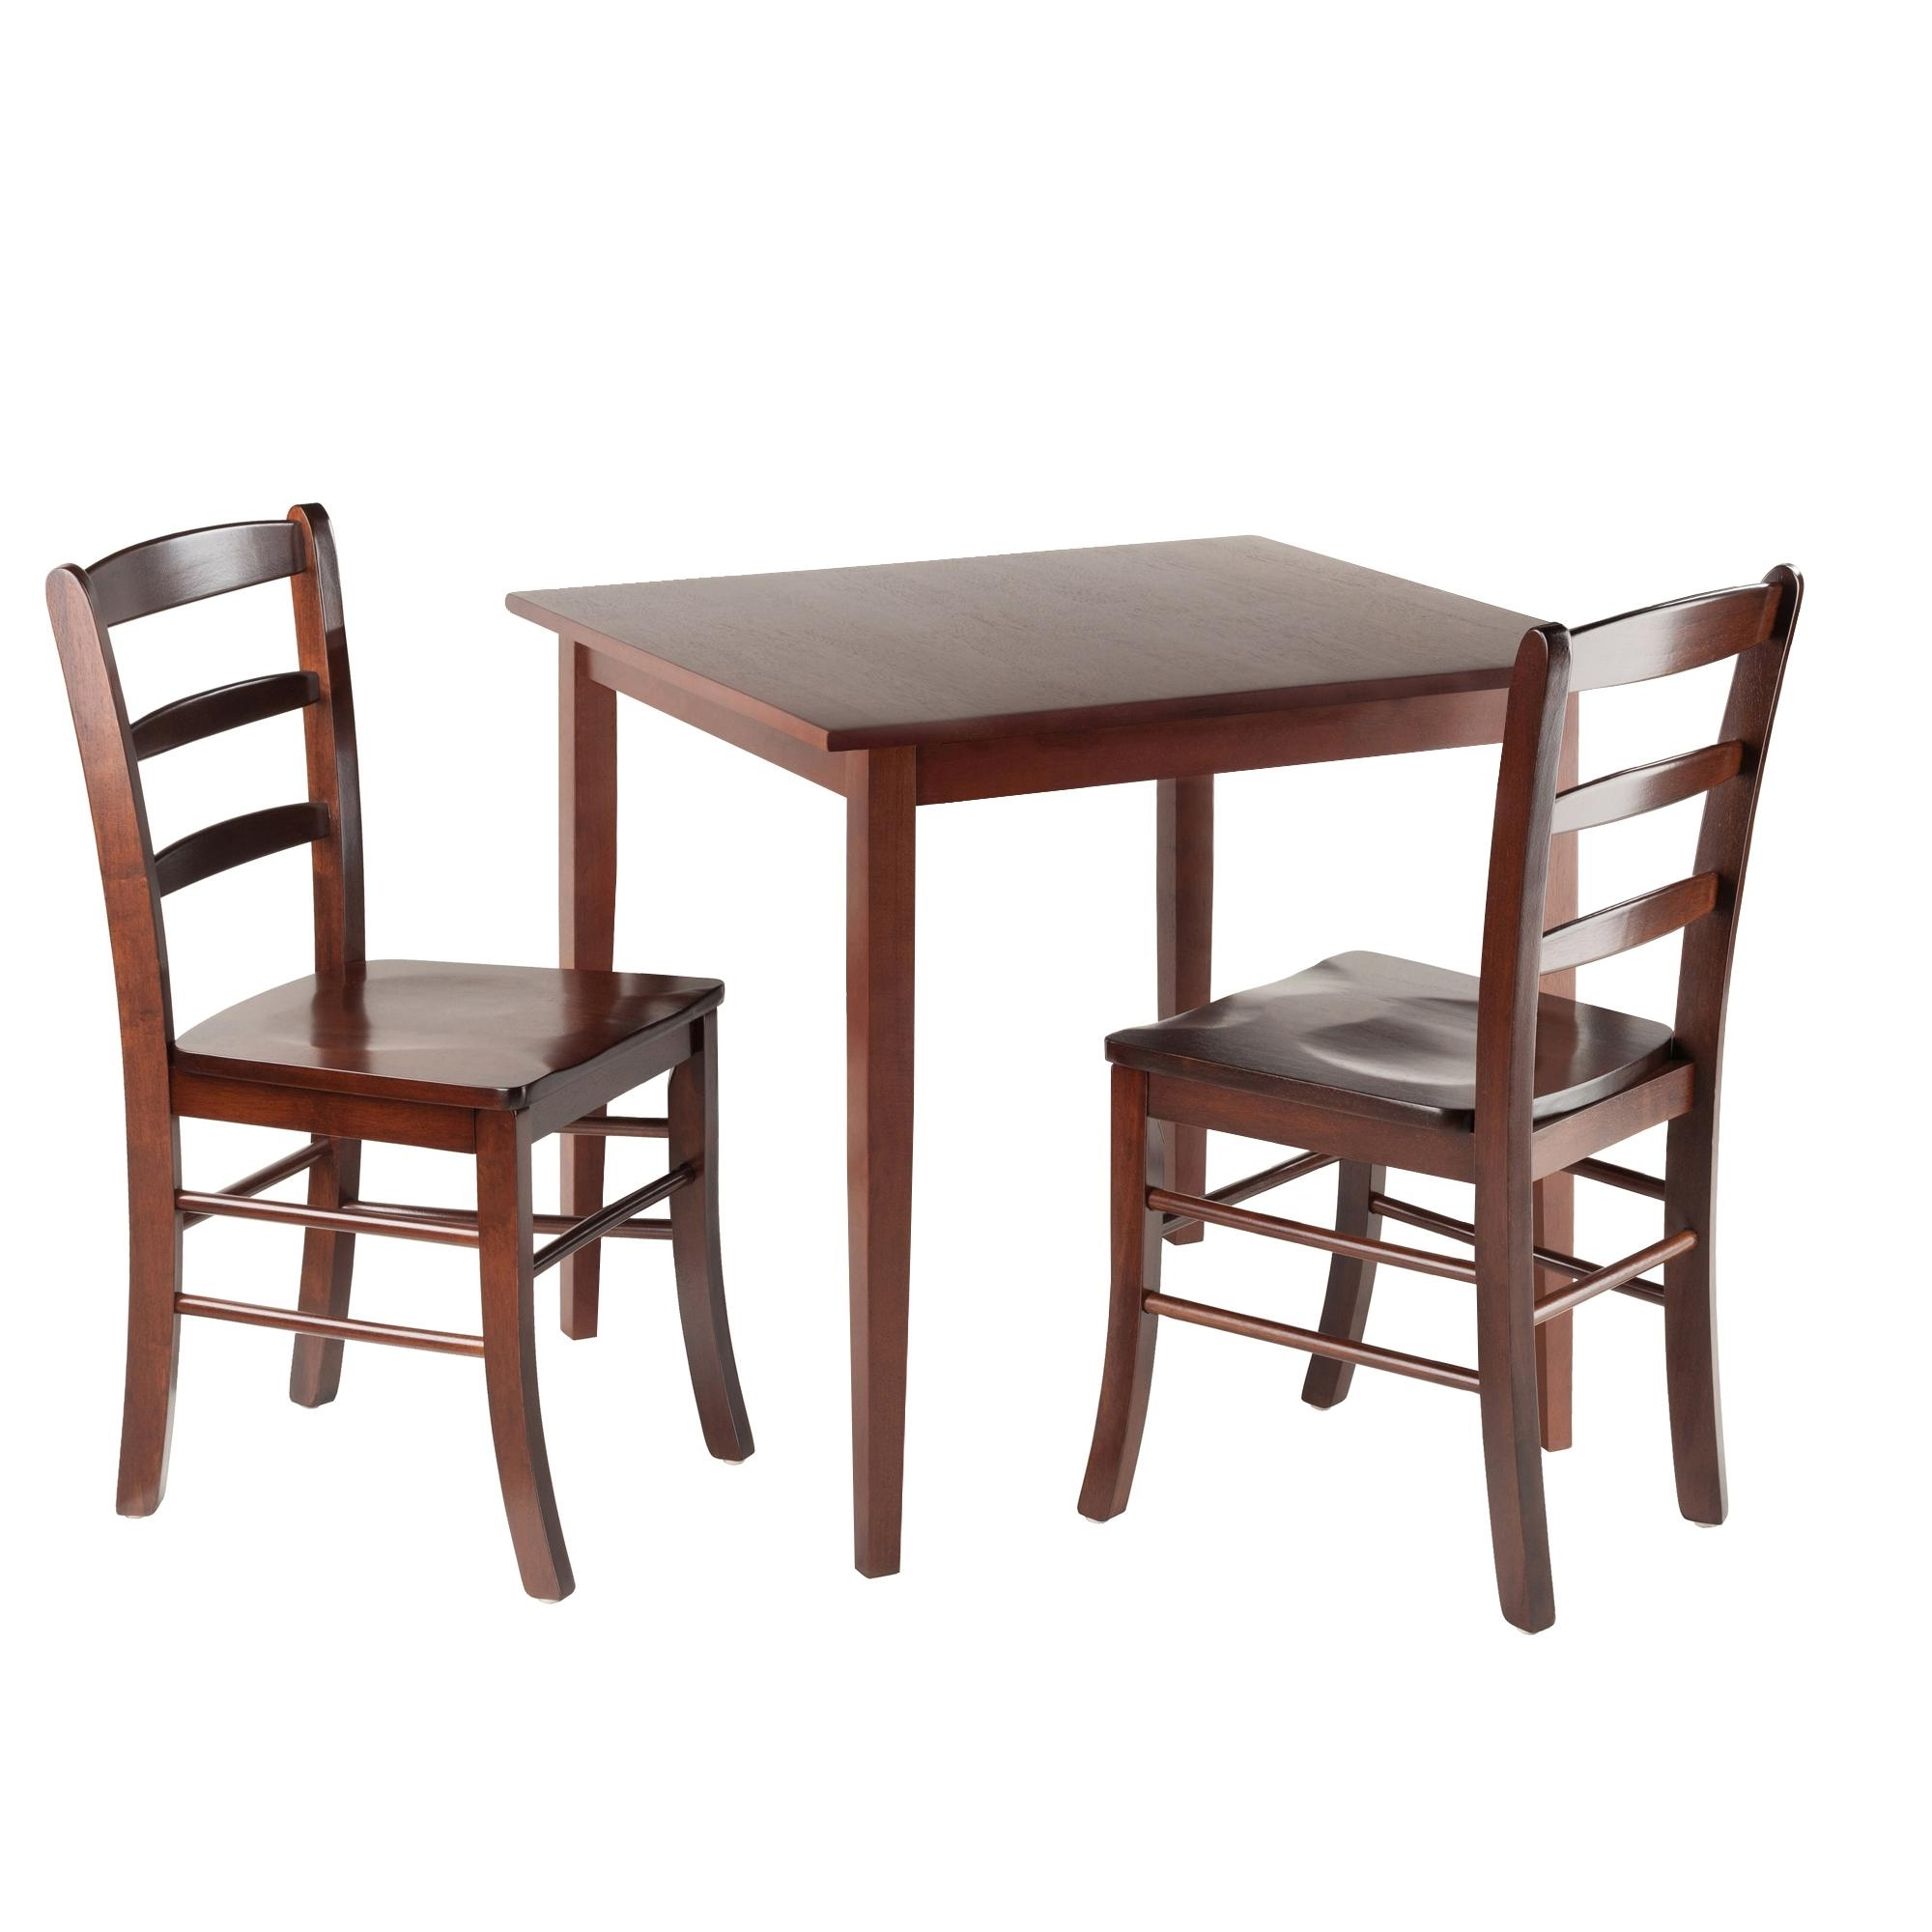 Kitchen Dining Sets For Famous Amazon – Winsome Groveland Square Dining Table With 2 Chairs,  (View 13 of 25)